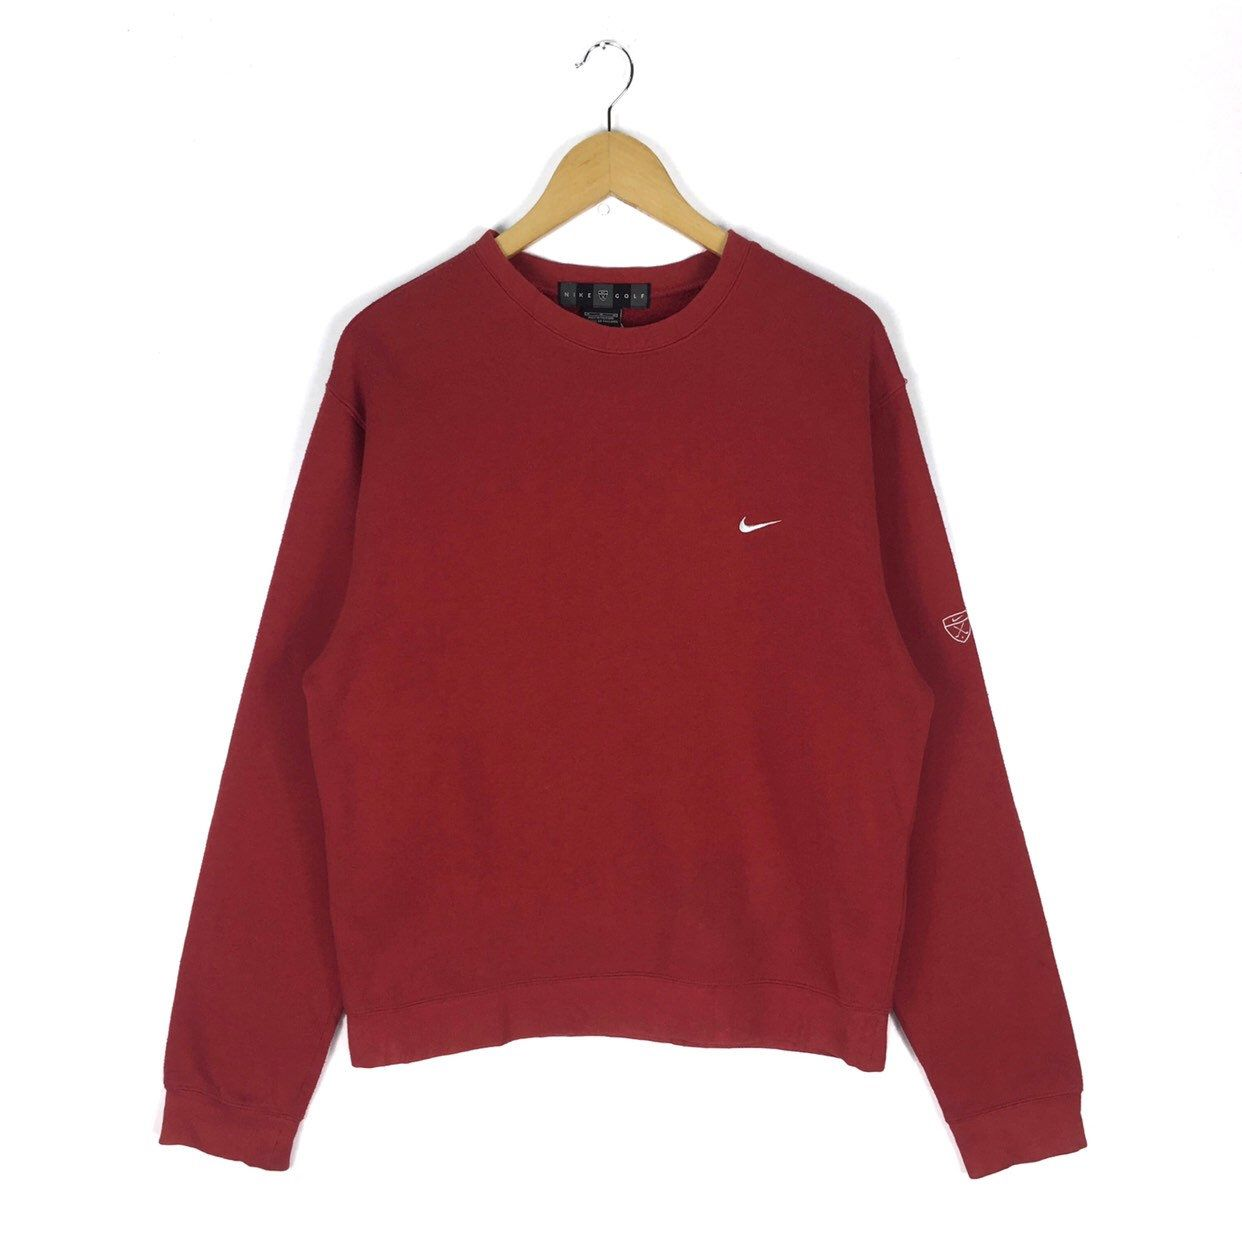 Excited To Share This Item From My Etsy Shop Vintage Nike Golf Swoosh Crewneck Sweatshirt Crewneck Small Lo Vintage Nike Sweatshirt Red Pullover Vintage Nike